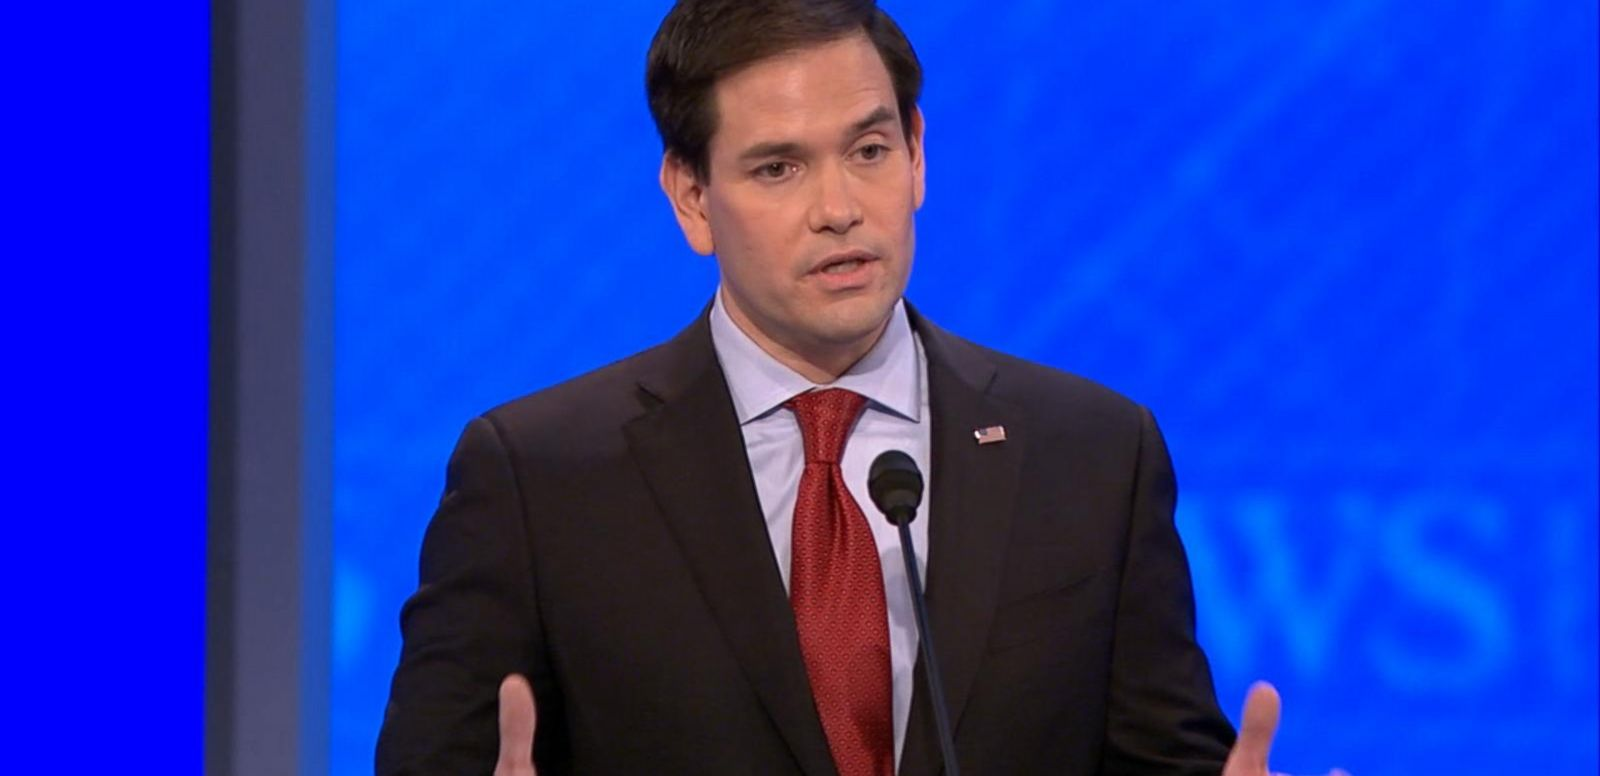 VIDEO: Marco Rubio Debates Response to His Immigration Bill at GOP Debate